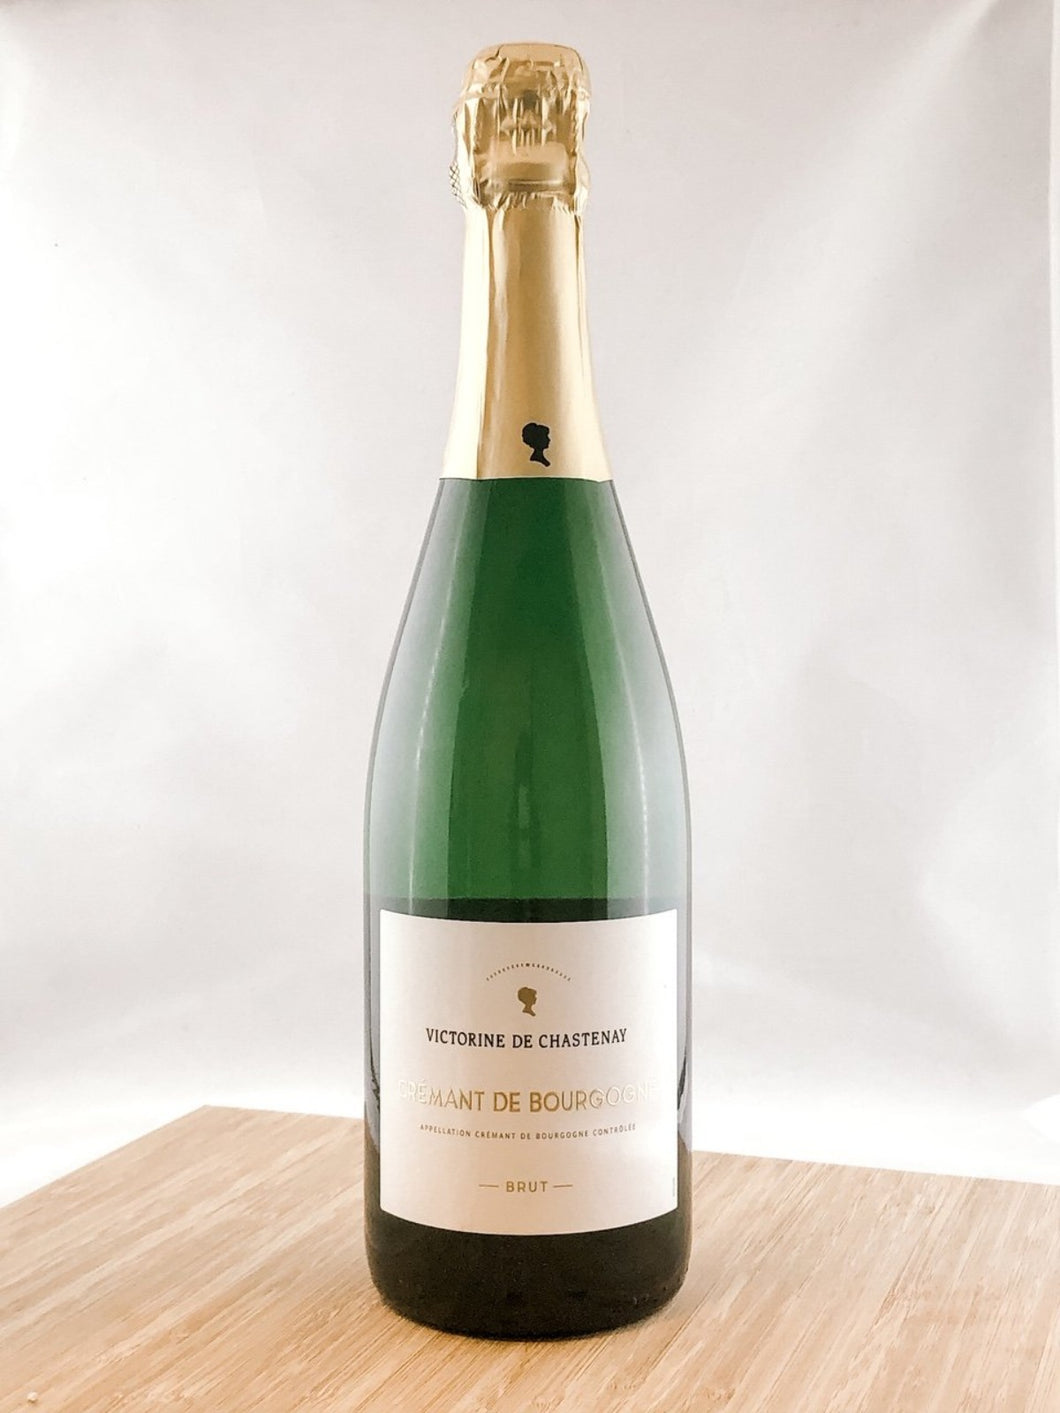 Victorine de Chastenay Crémant, part of our champagne delivery and great for unique gift ideas.